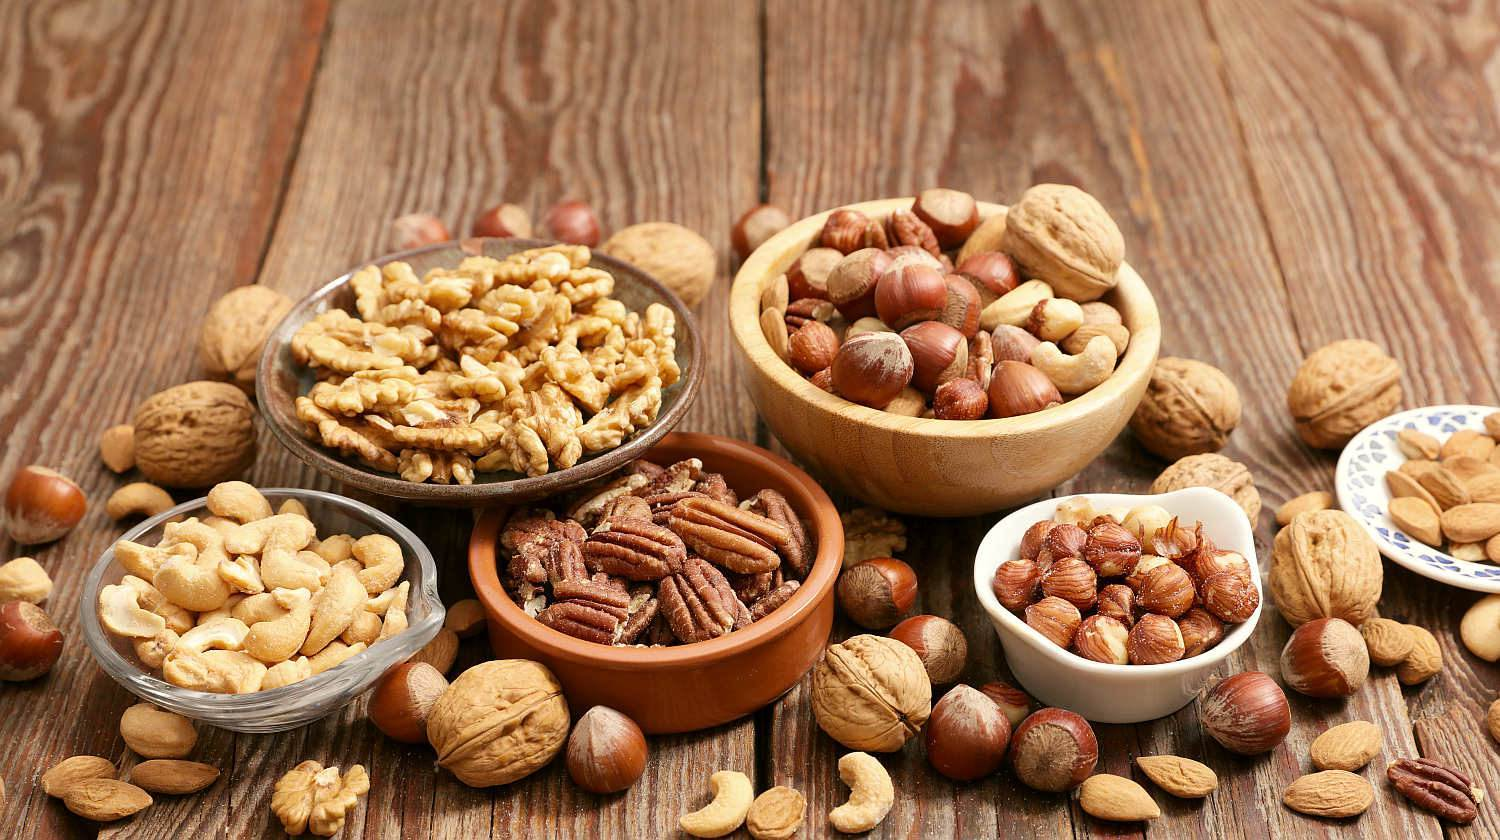 Assorted nut on wooden background | What's The Difference Between Various Nuts and Seeds? | types of nuts | Featured